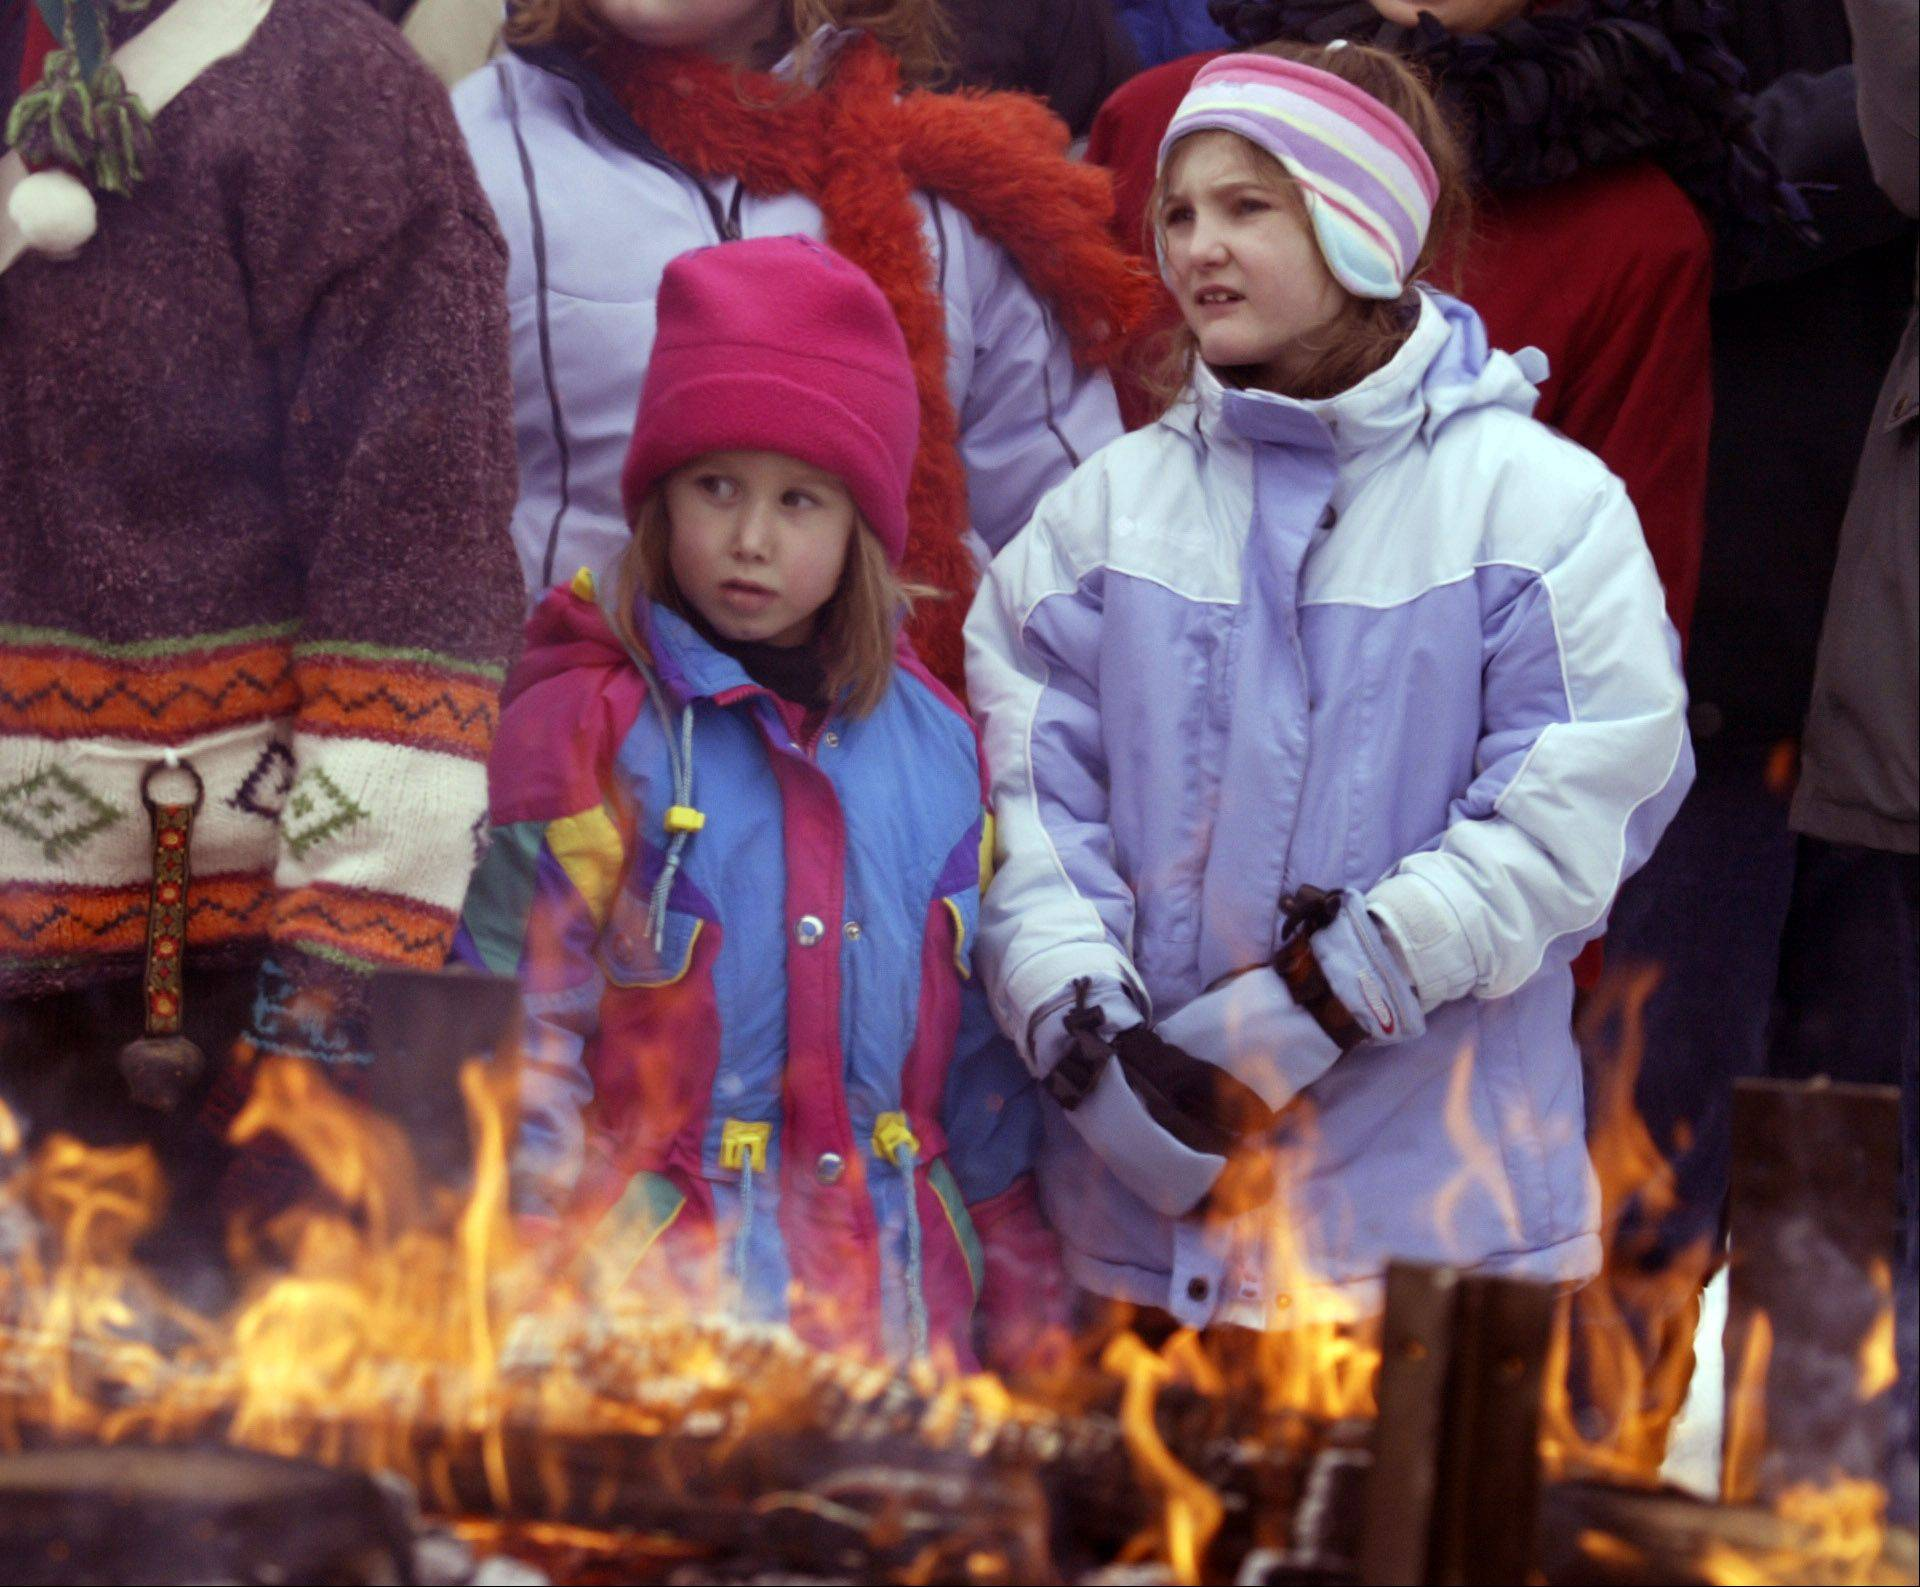 Hundreds of visitors try to sort through complicated and funny clues to be the first to find the 6-foot yule log hidden on the grounds of the Morton Arboretum.